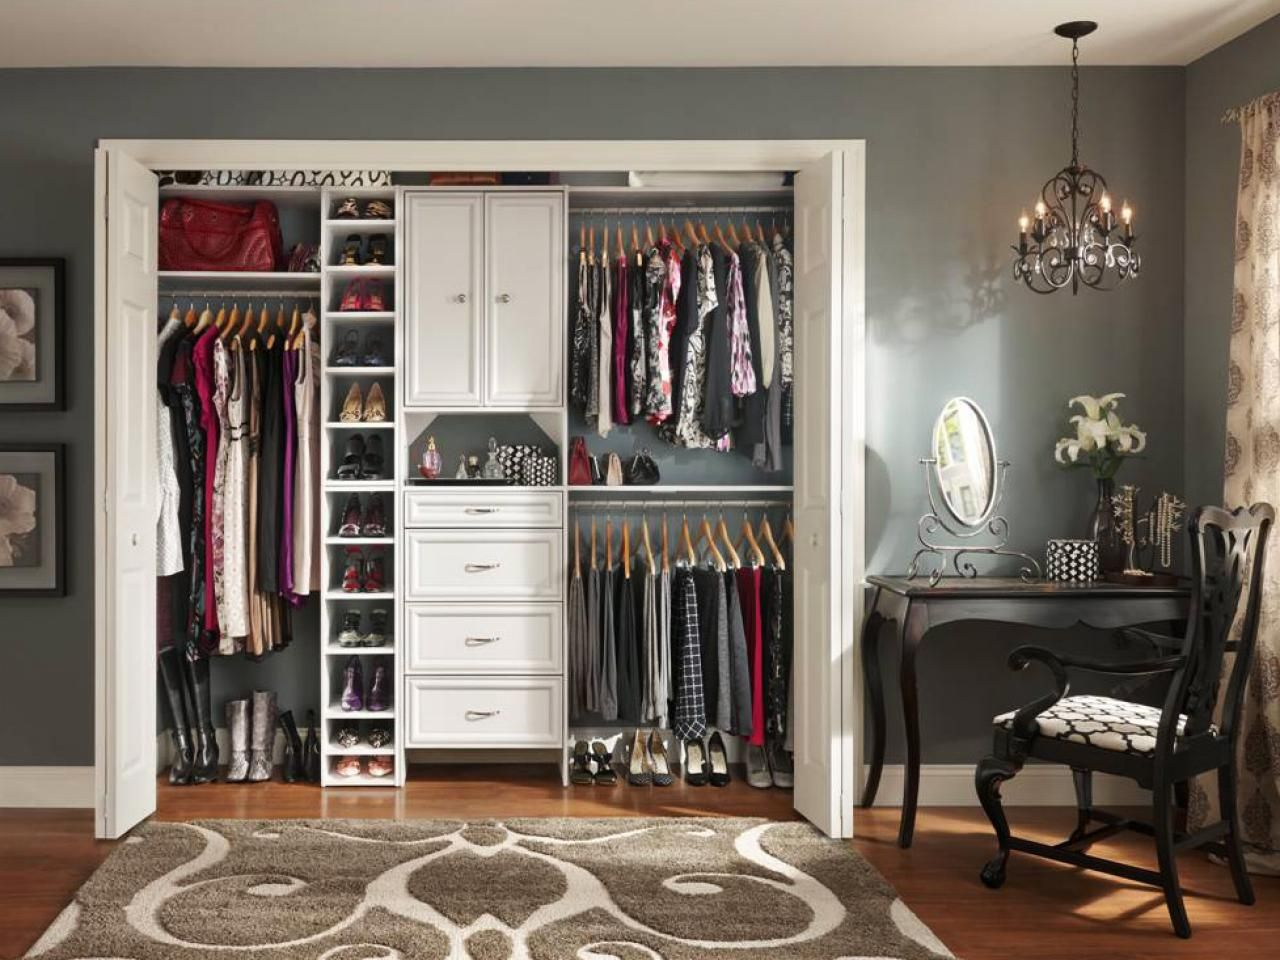 Small Closet Organization Ideas: Pictures, Options & Tips | For the ...